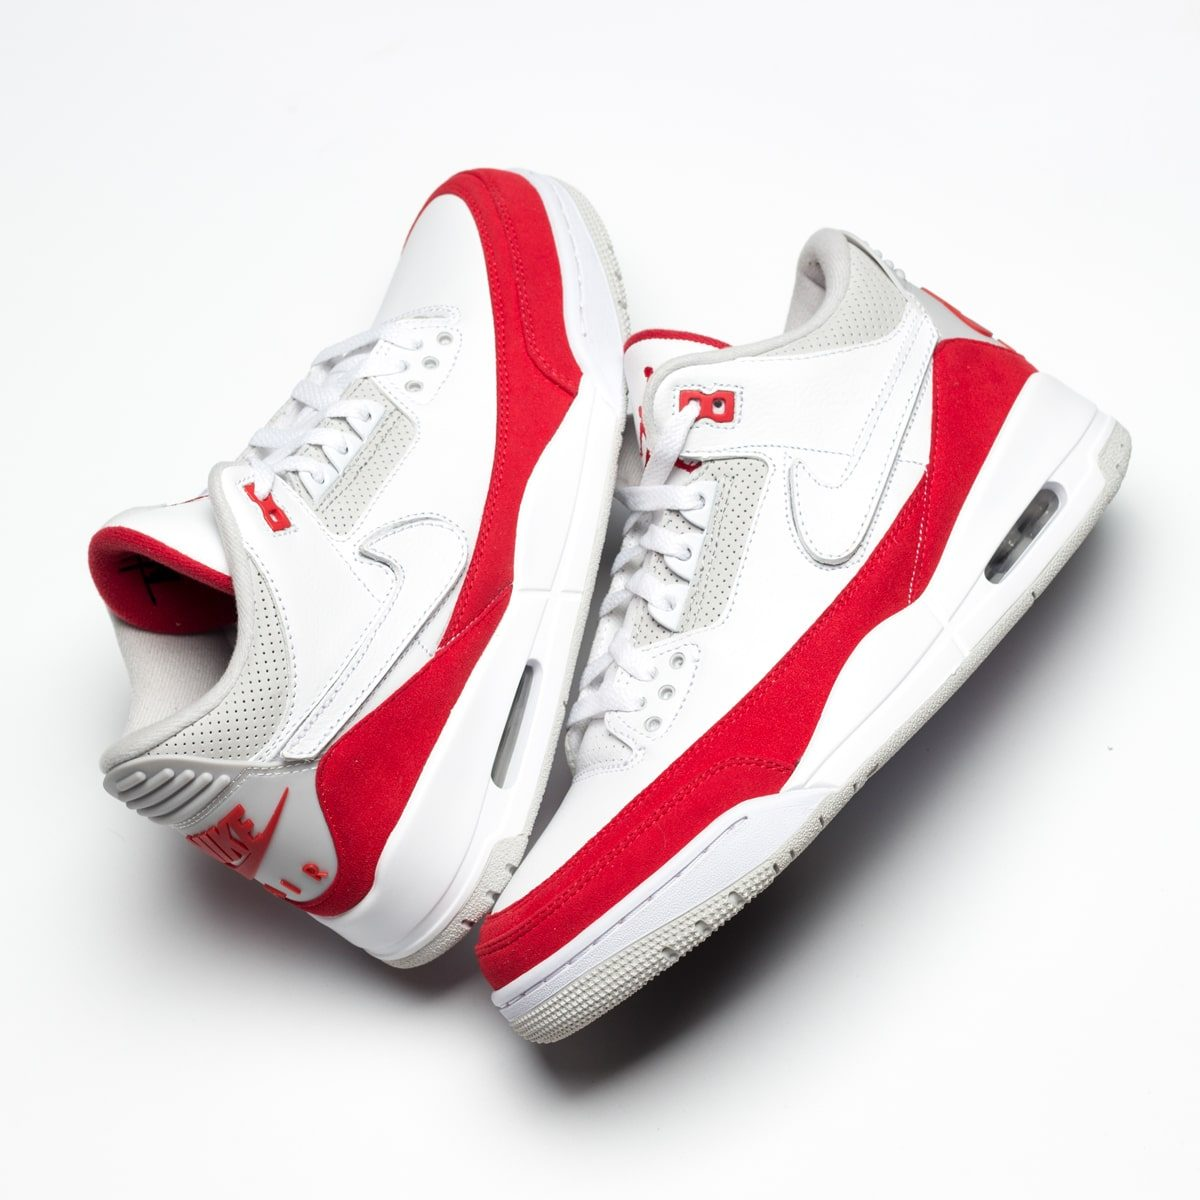 741de6e91c70bd Where to Buy the Air Jordan 3 Tinker